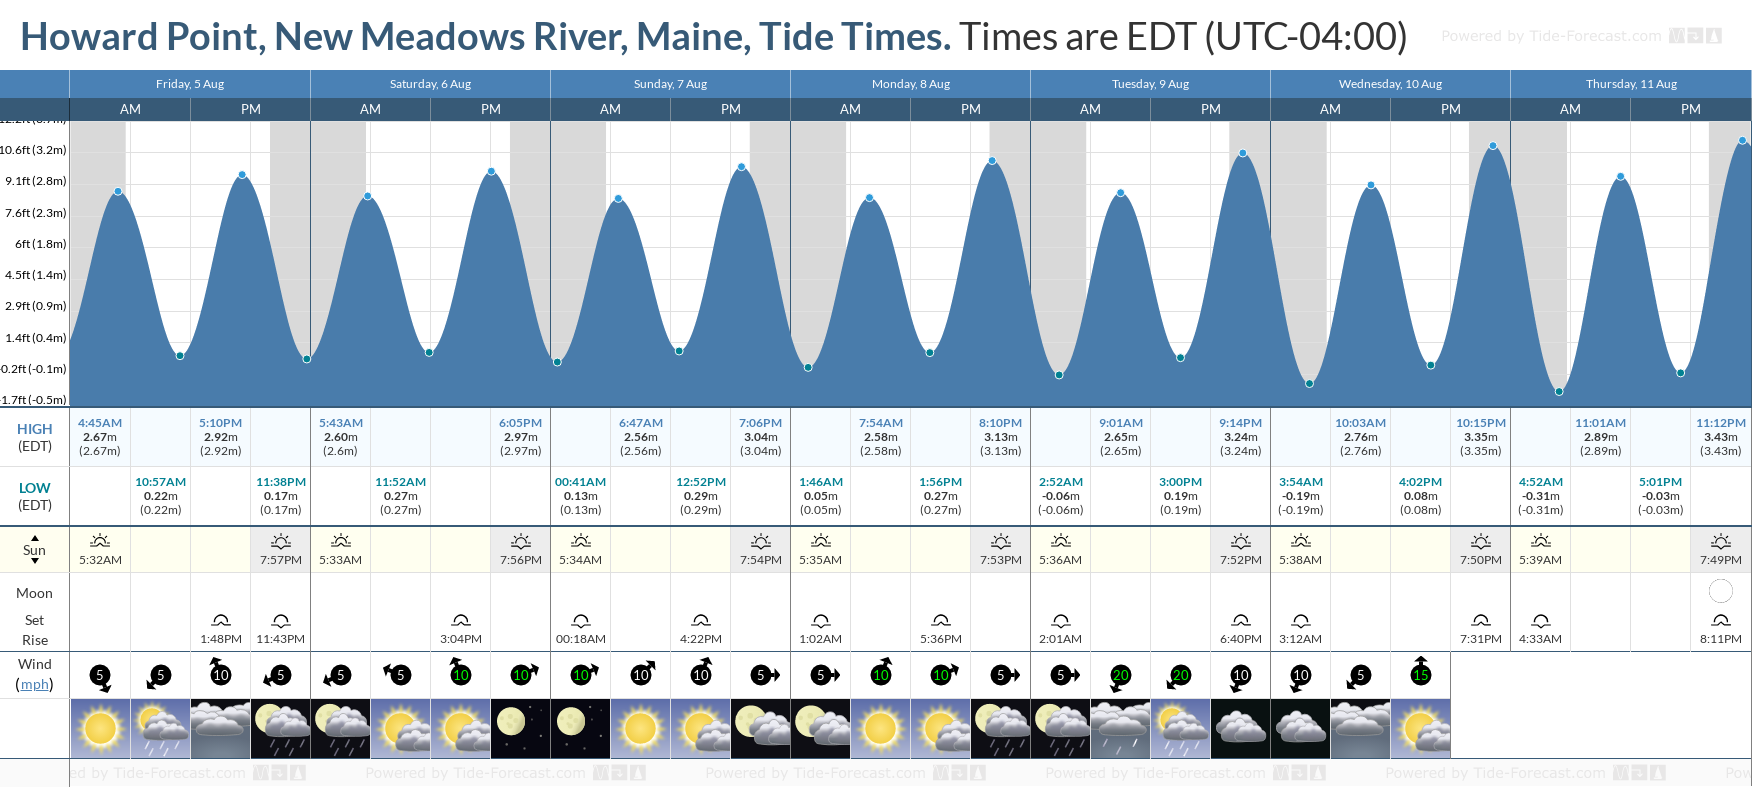 Howard Point, New Meadows River, Maine Tide Chart including high and low tide tide times for the next 7 days